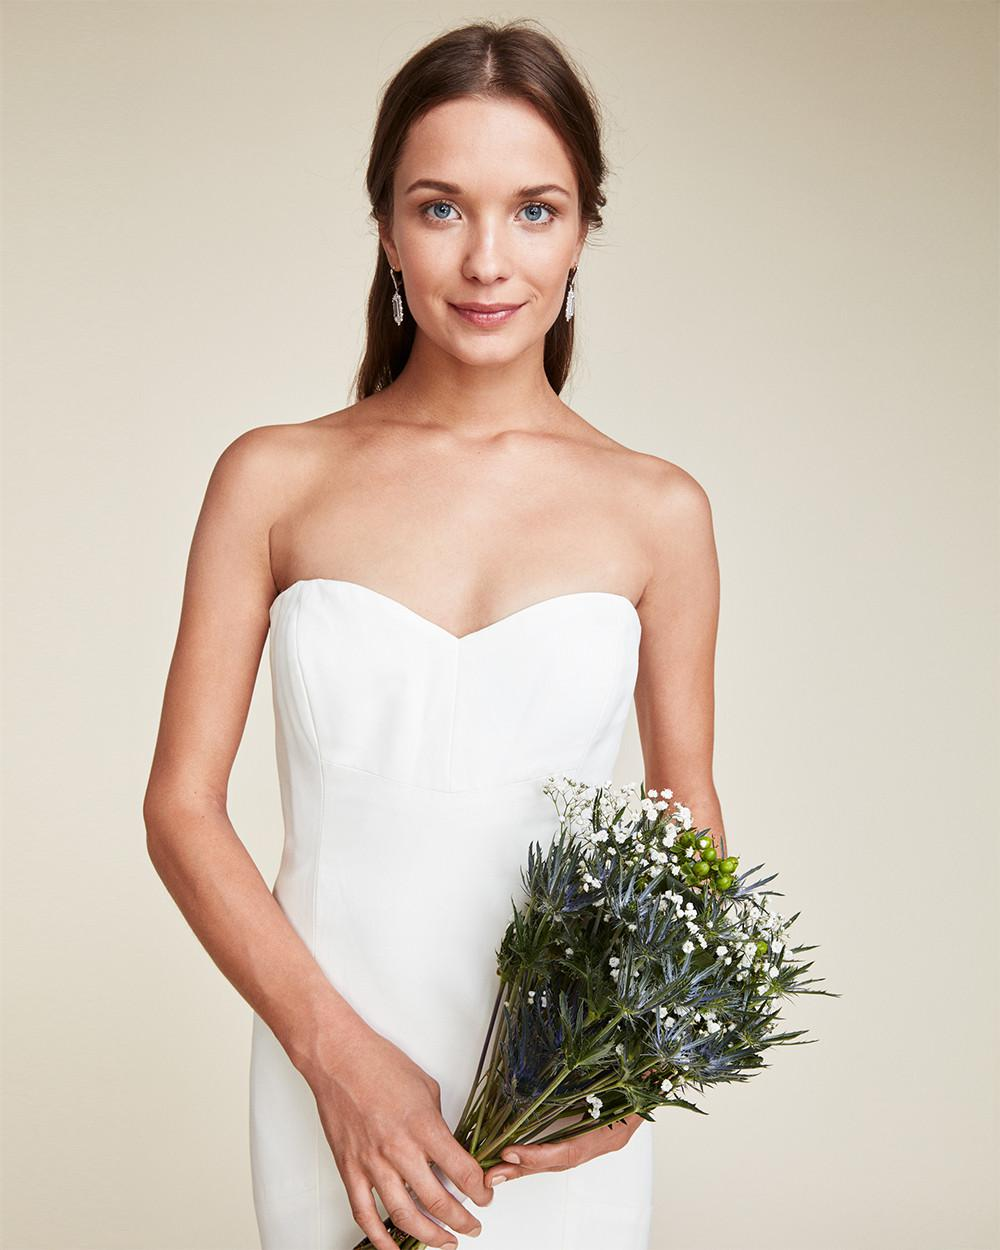 Lyst - Nicole Miller Dakota Bridal Gown in White